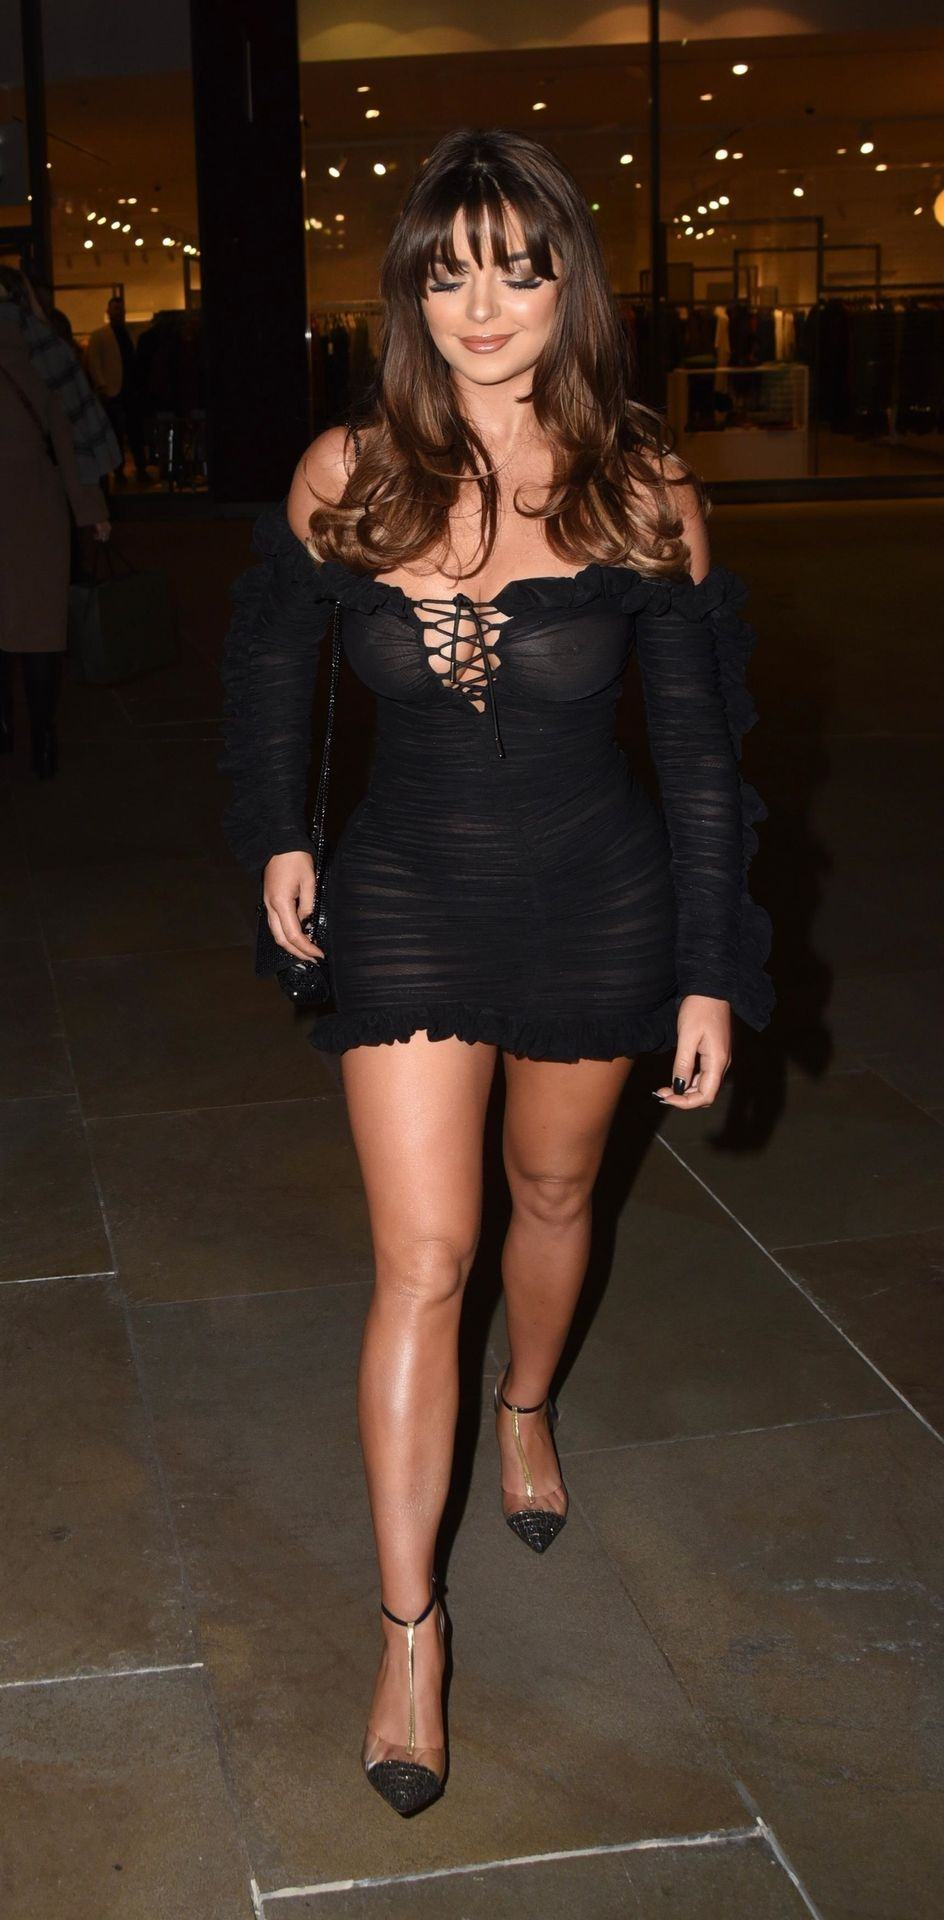 Demi Rose See Through No Bra Photos - Thefappening.link